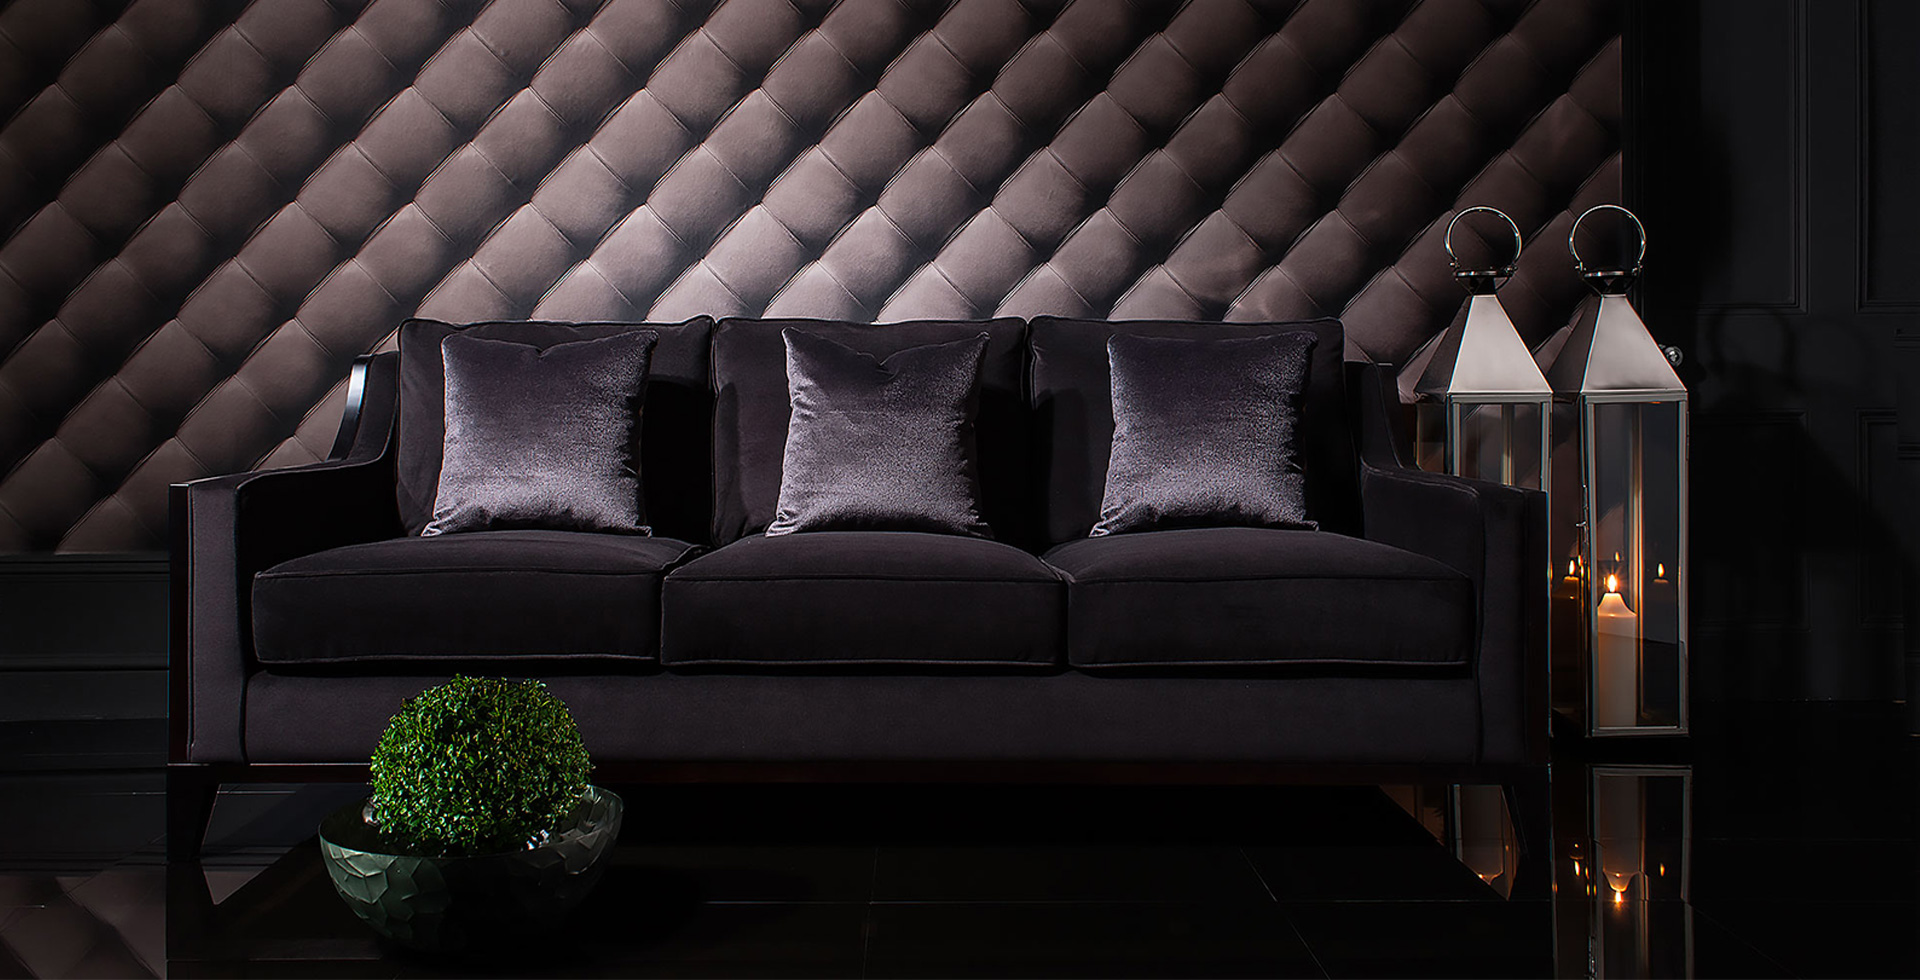 Bespoke Sofa London Luxury Furniture